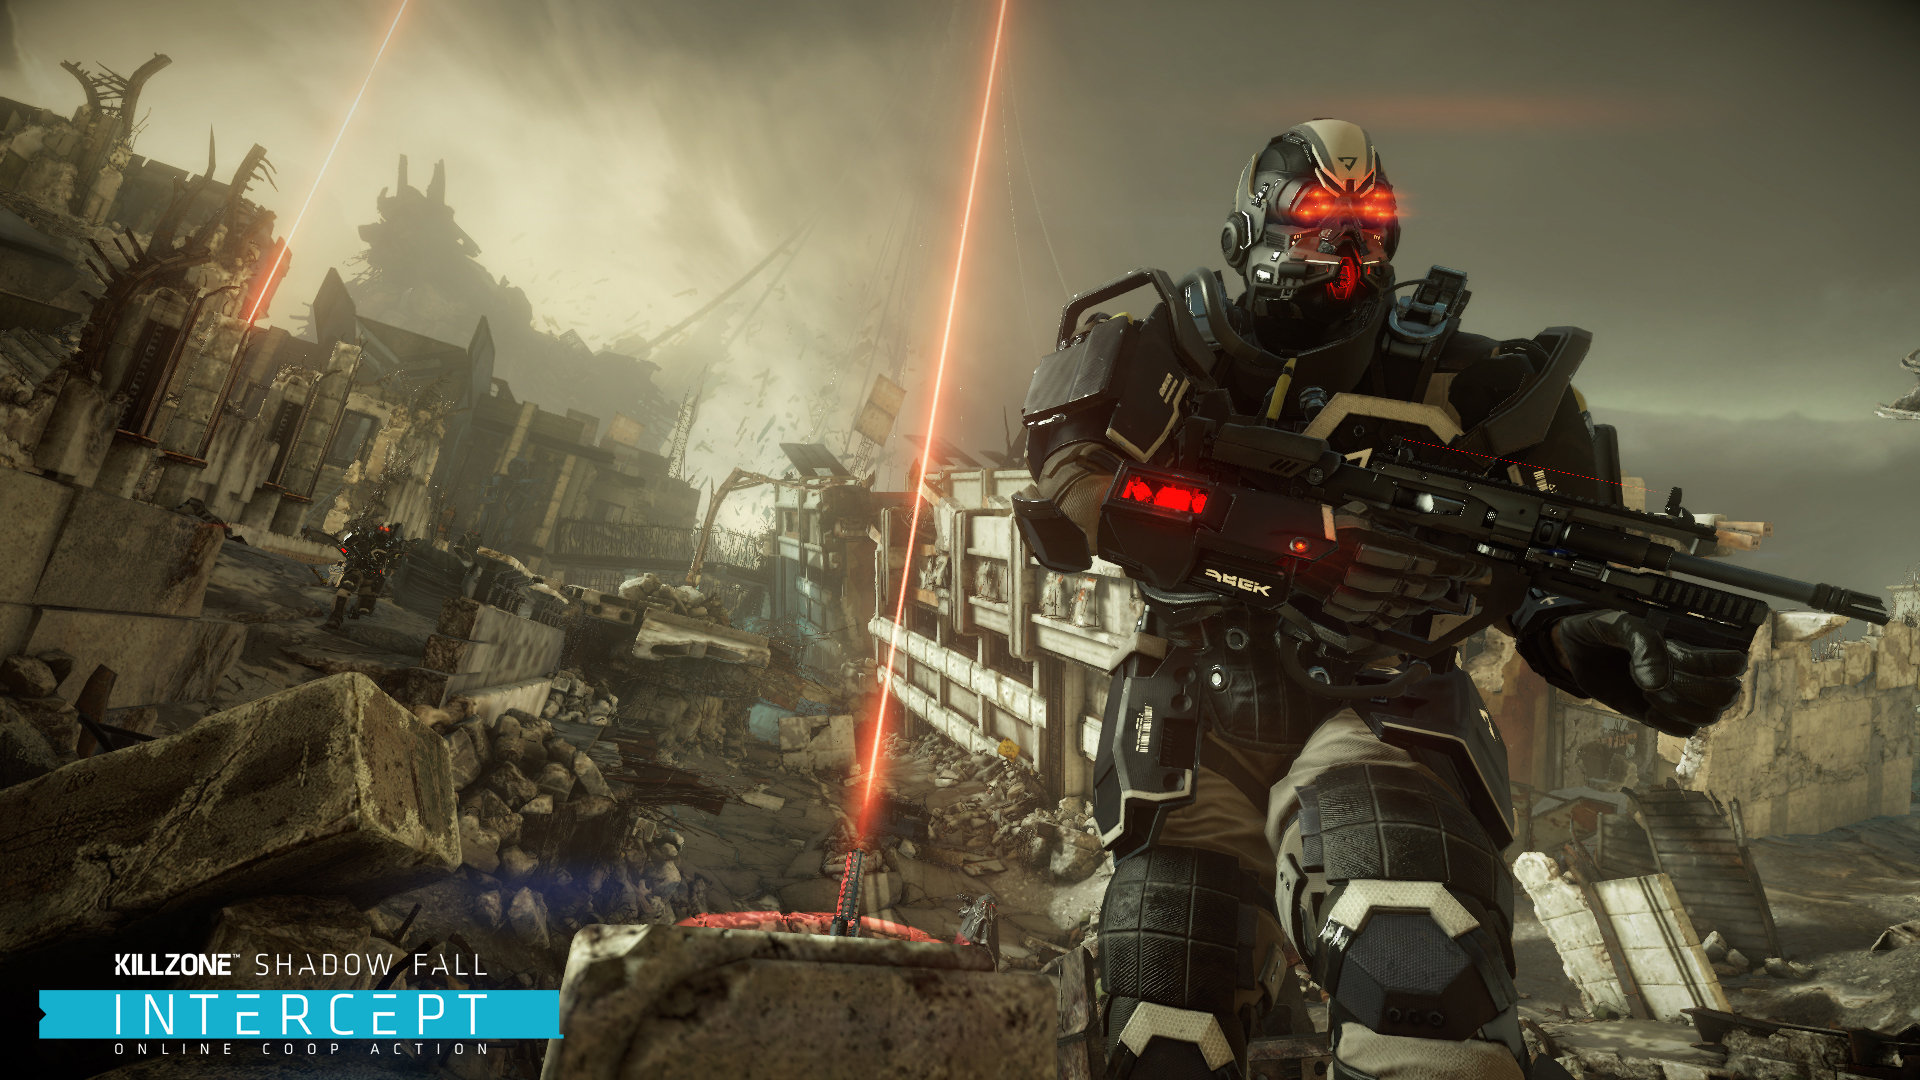 killzone_shadow-fall-insurgent-pack-screenshot-05-ps4-us-31jul14.jpg